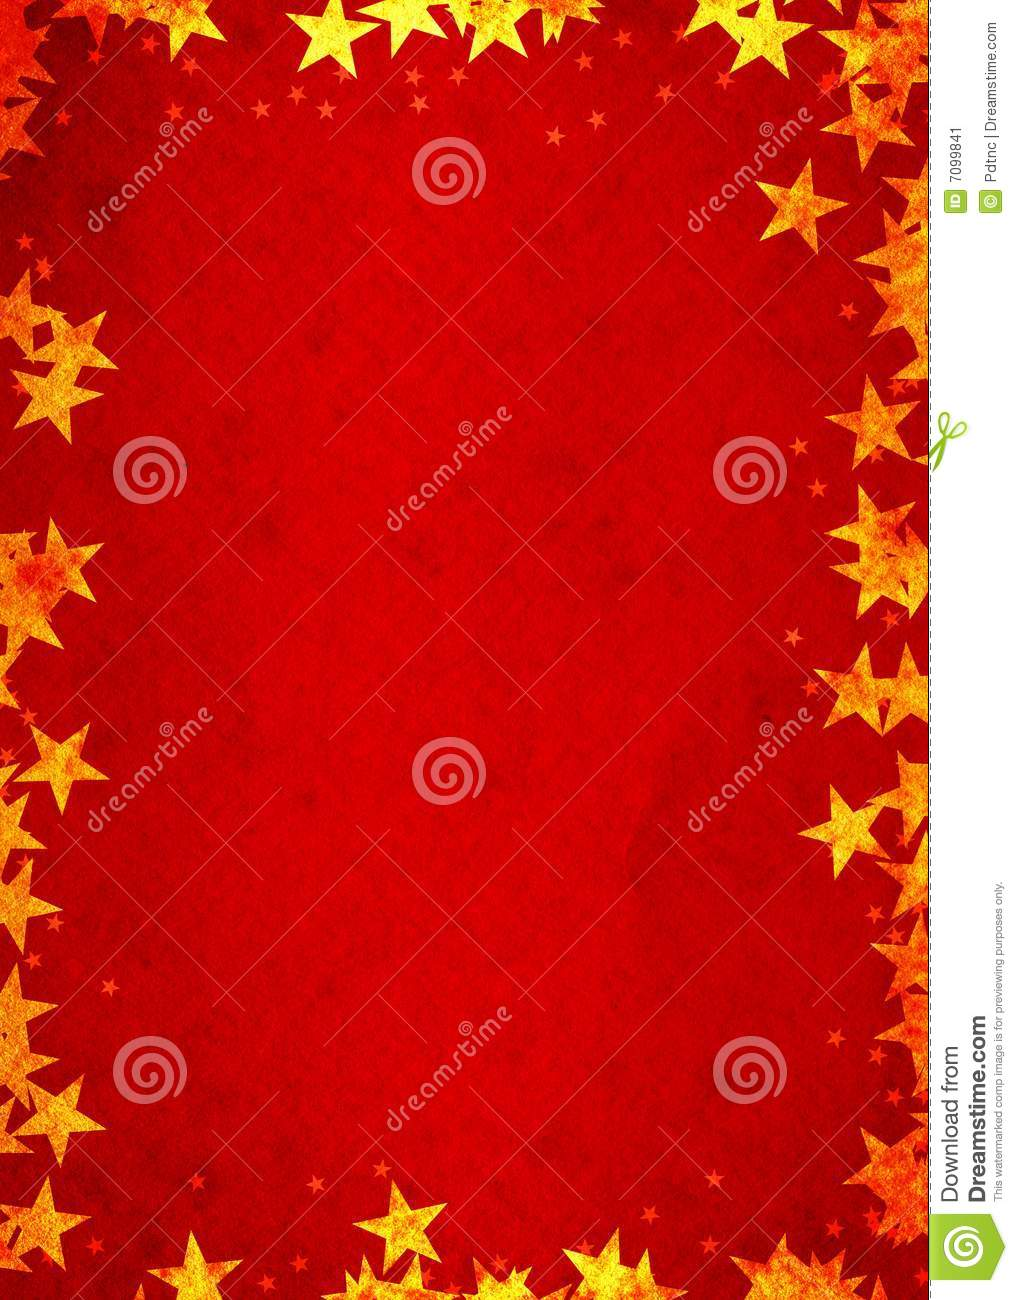 festive party christmas card background stars stock image festive party christmas card background stars